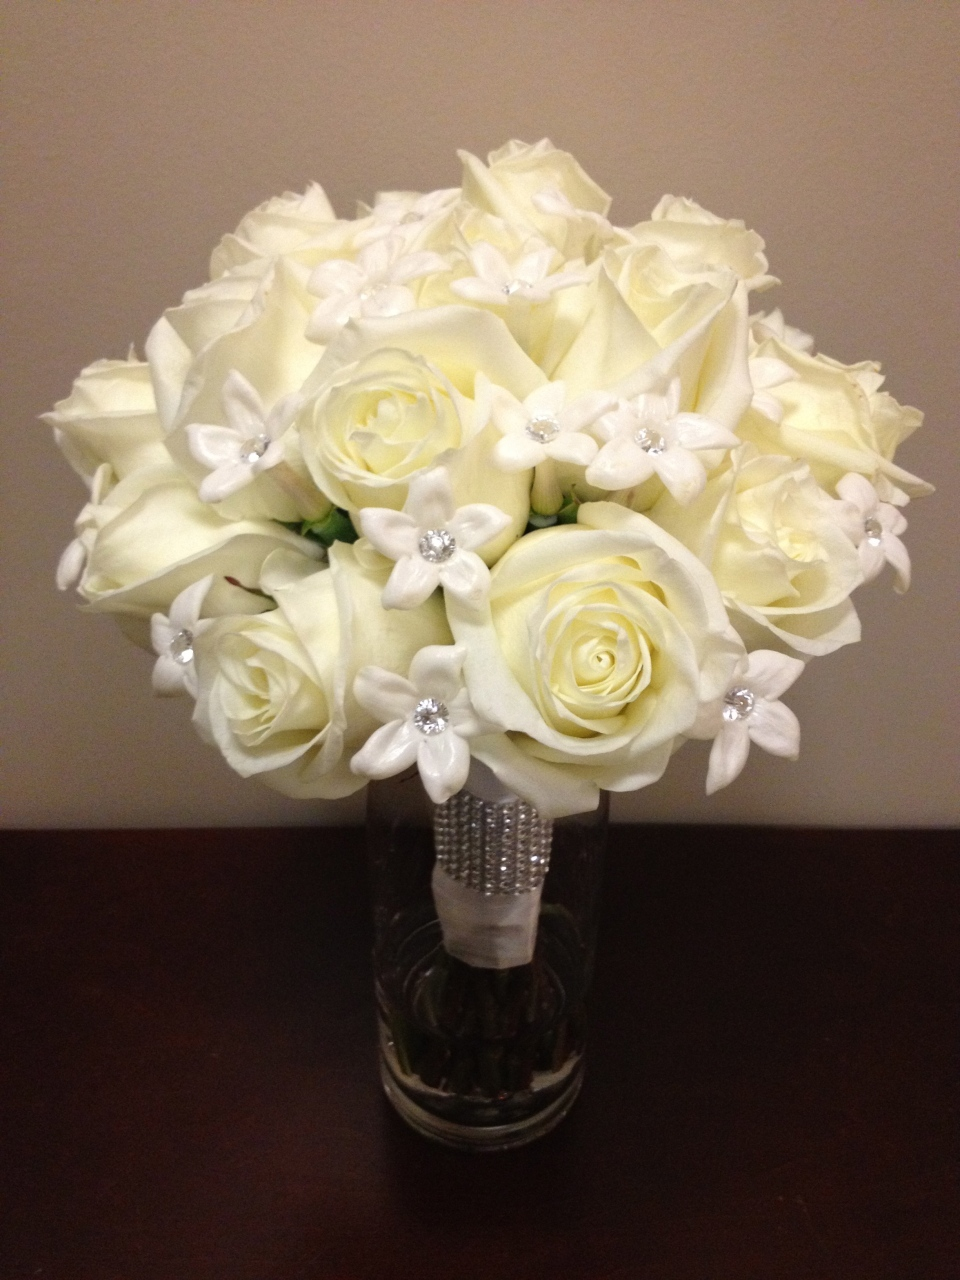 Bridal bouquet of white roses and stephanotis blooms